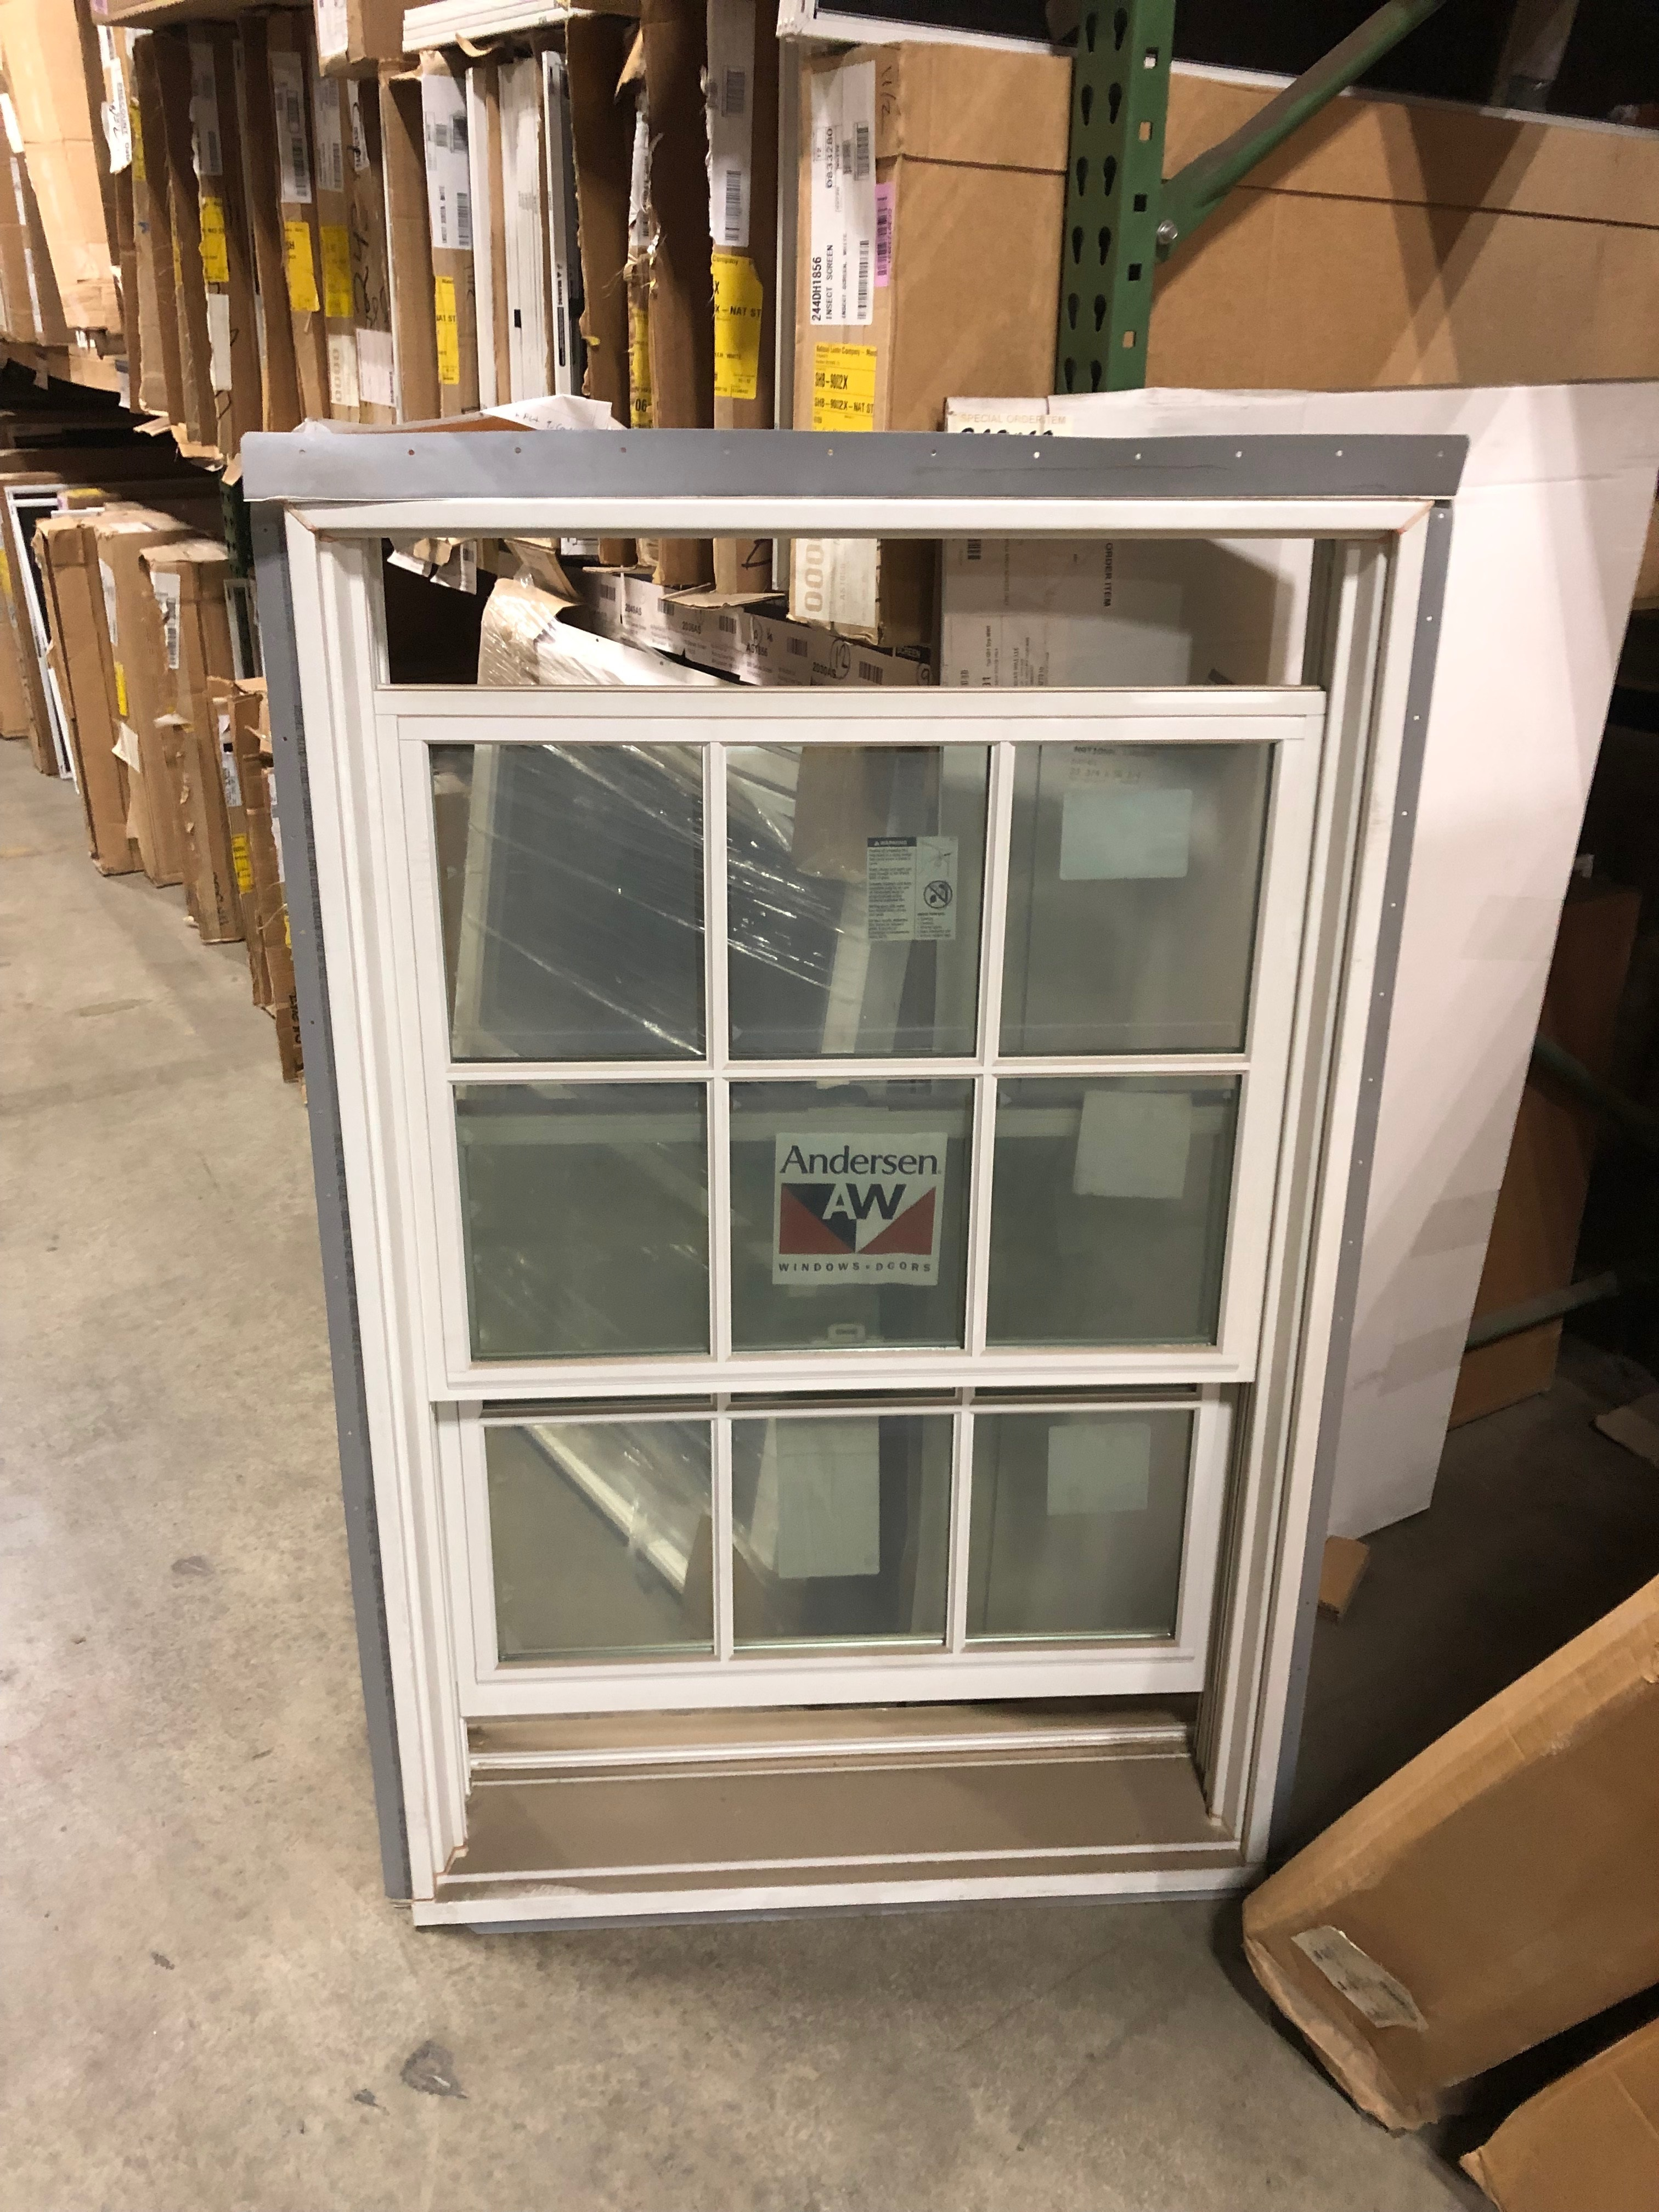 Andersen 2842E Tilt-Wash Window w/Vertical Sliders